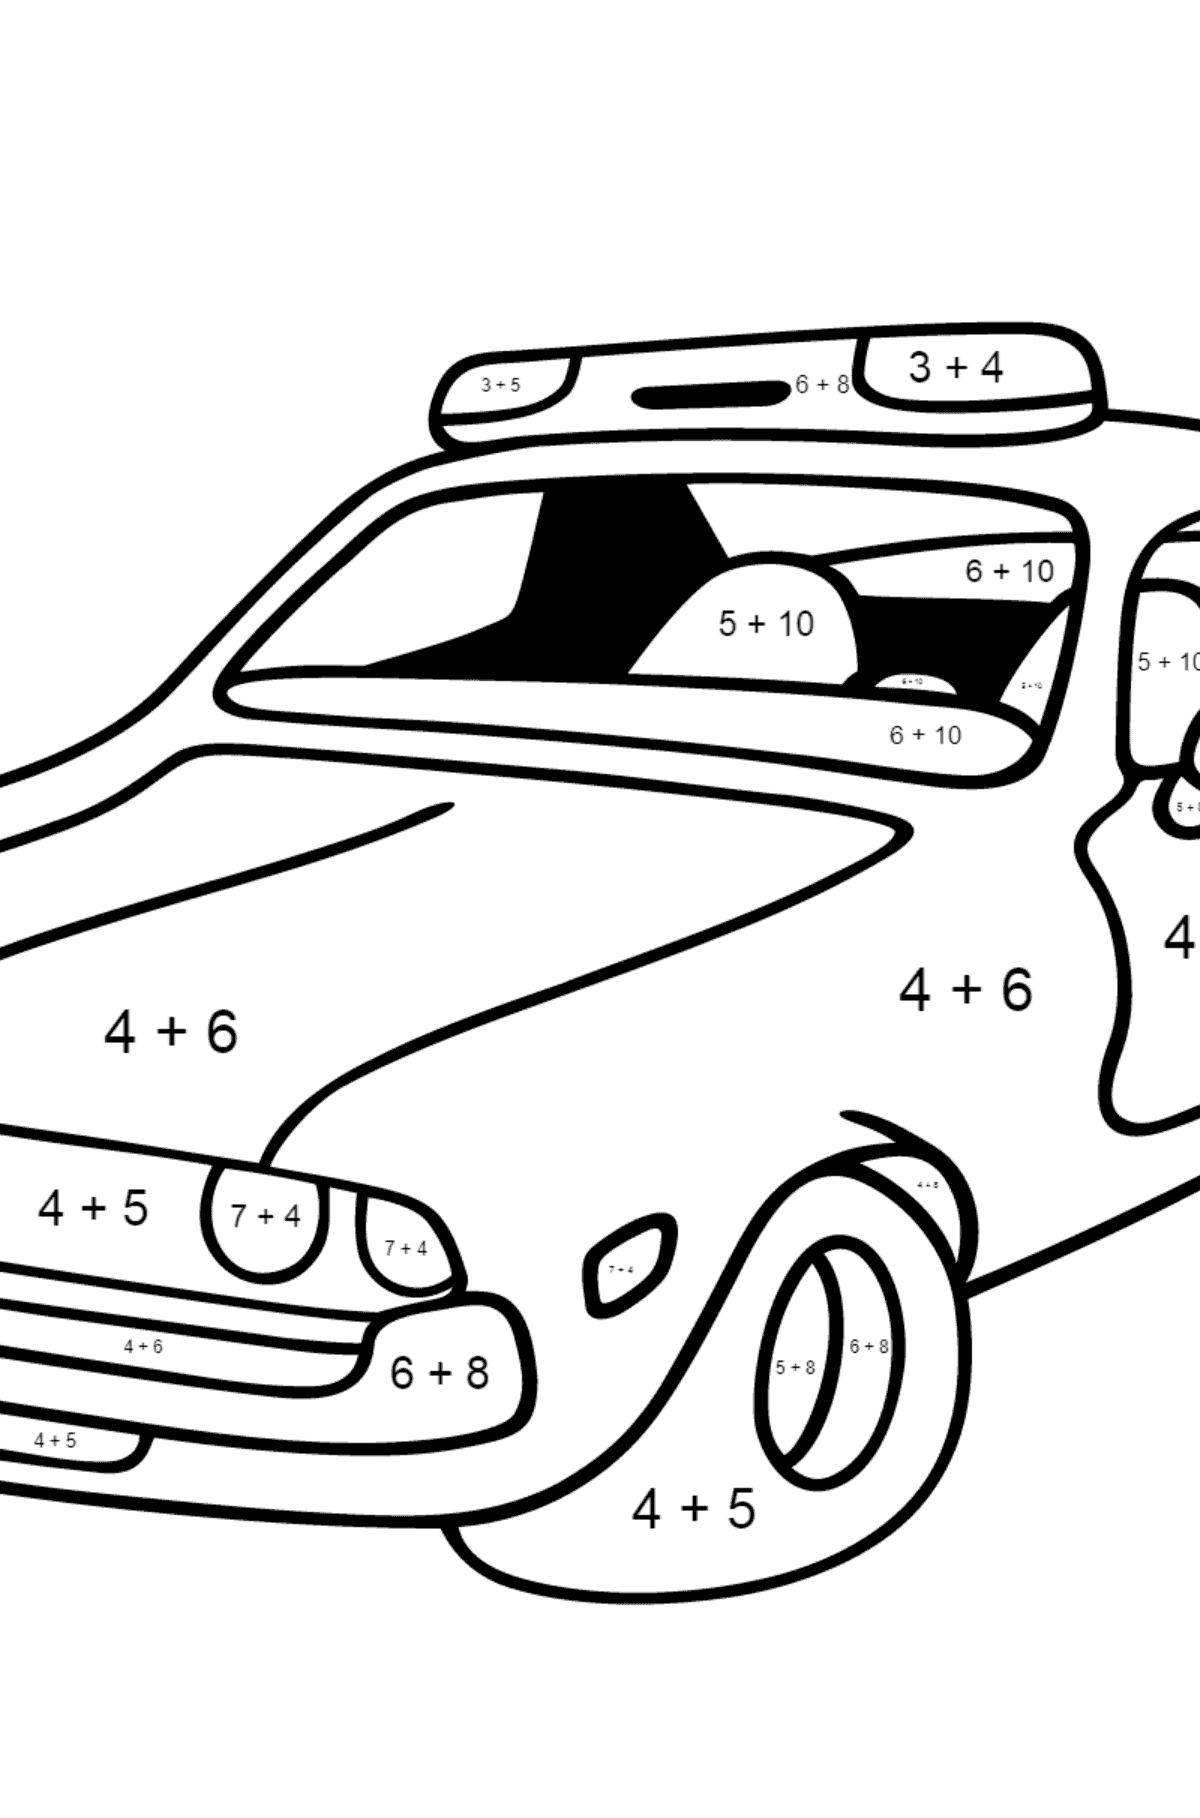 Coloring Page - A Red Police Car for Children  - Color by Number Addition